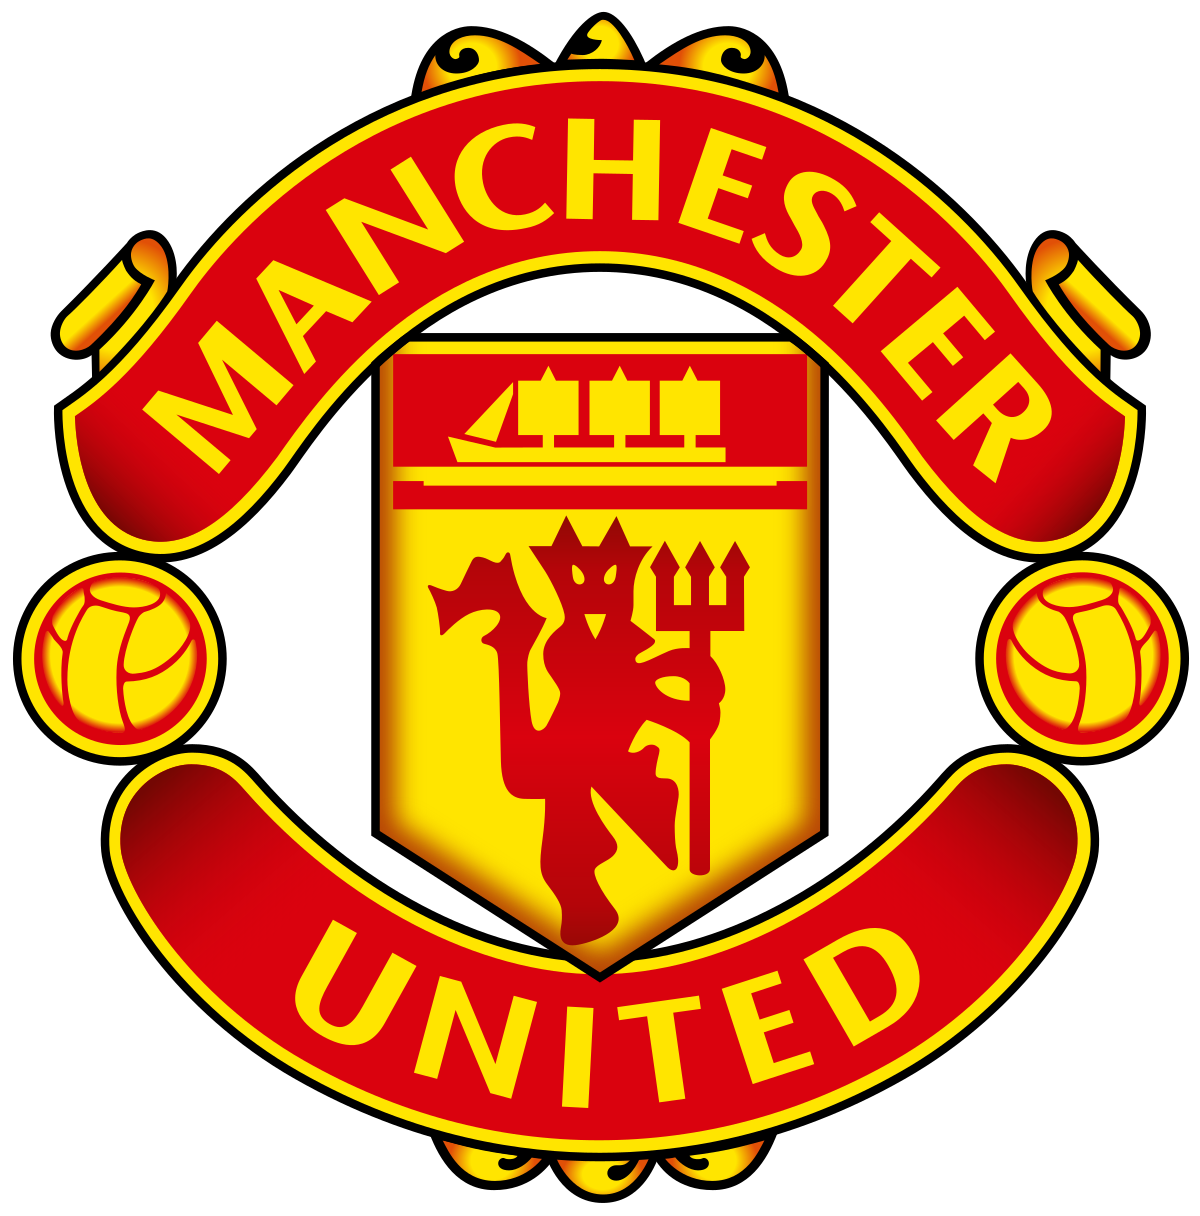 Manchester United are one of the most successful European football clubs of all time